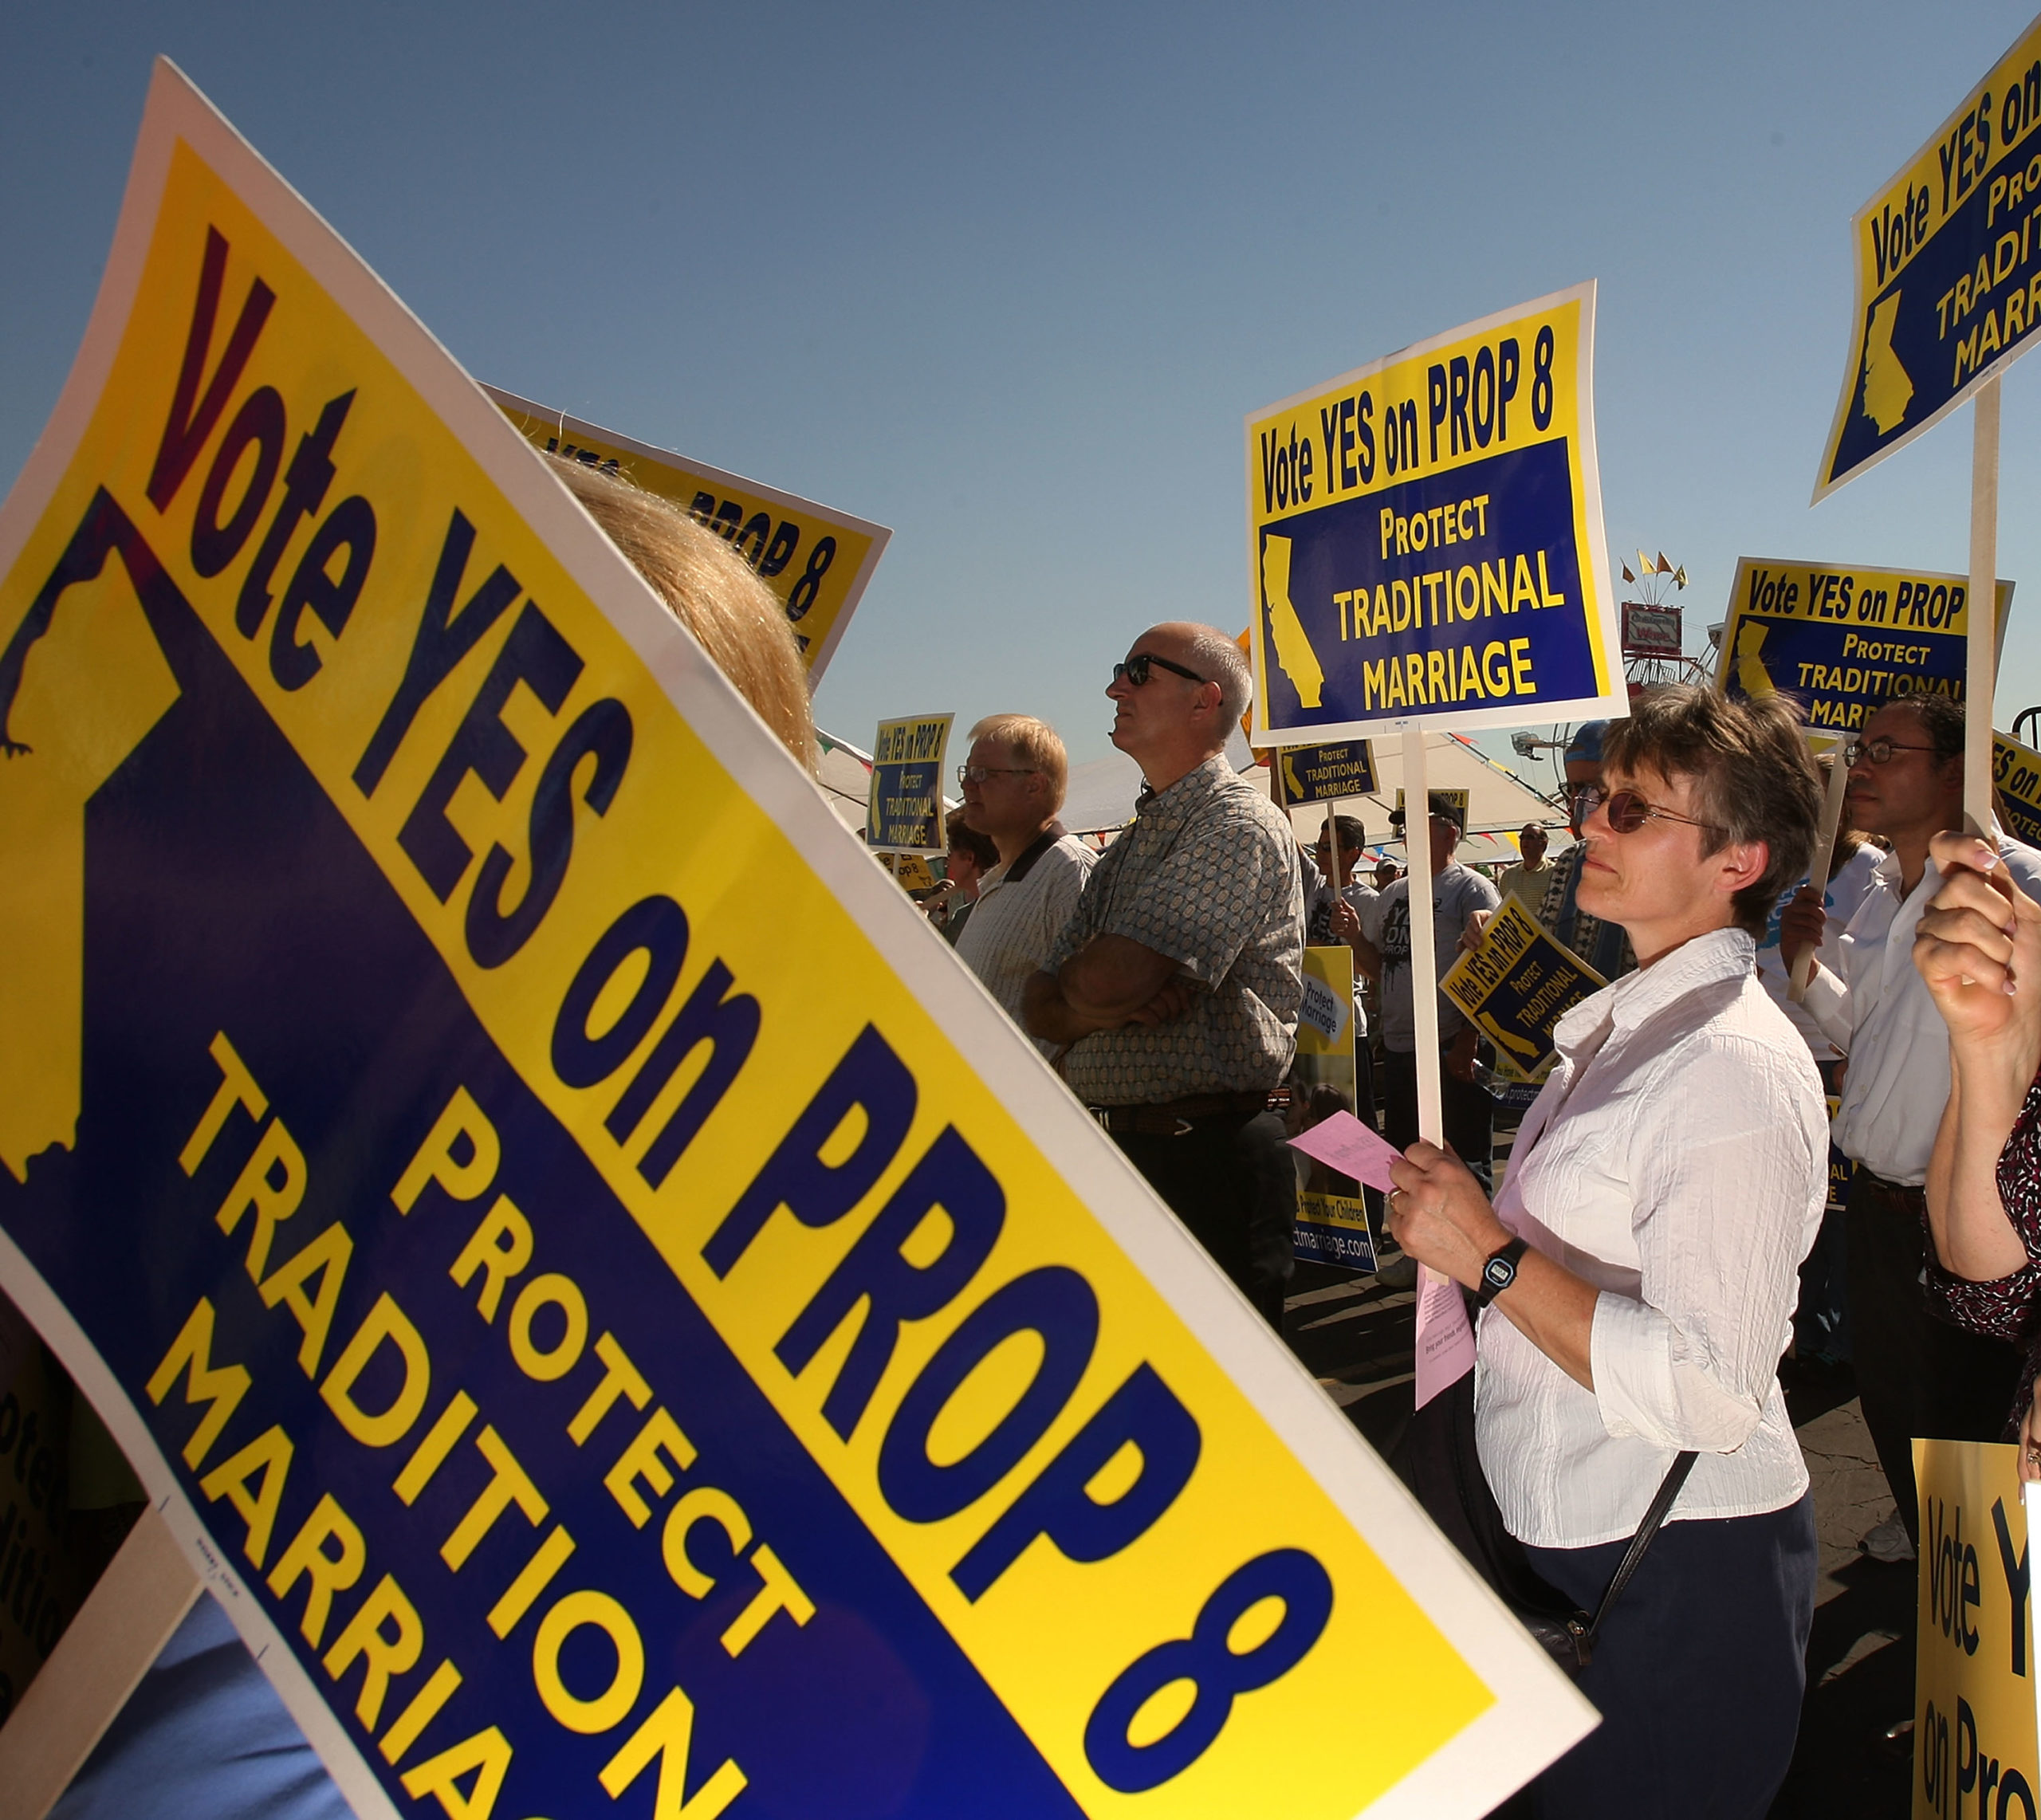 Supporters of Proposition 8, which would outlaw same-sex marriage throughout California, rally during a 'Yes on 8 bus tour in Los Angeles, California.